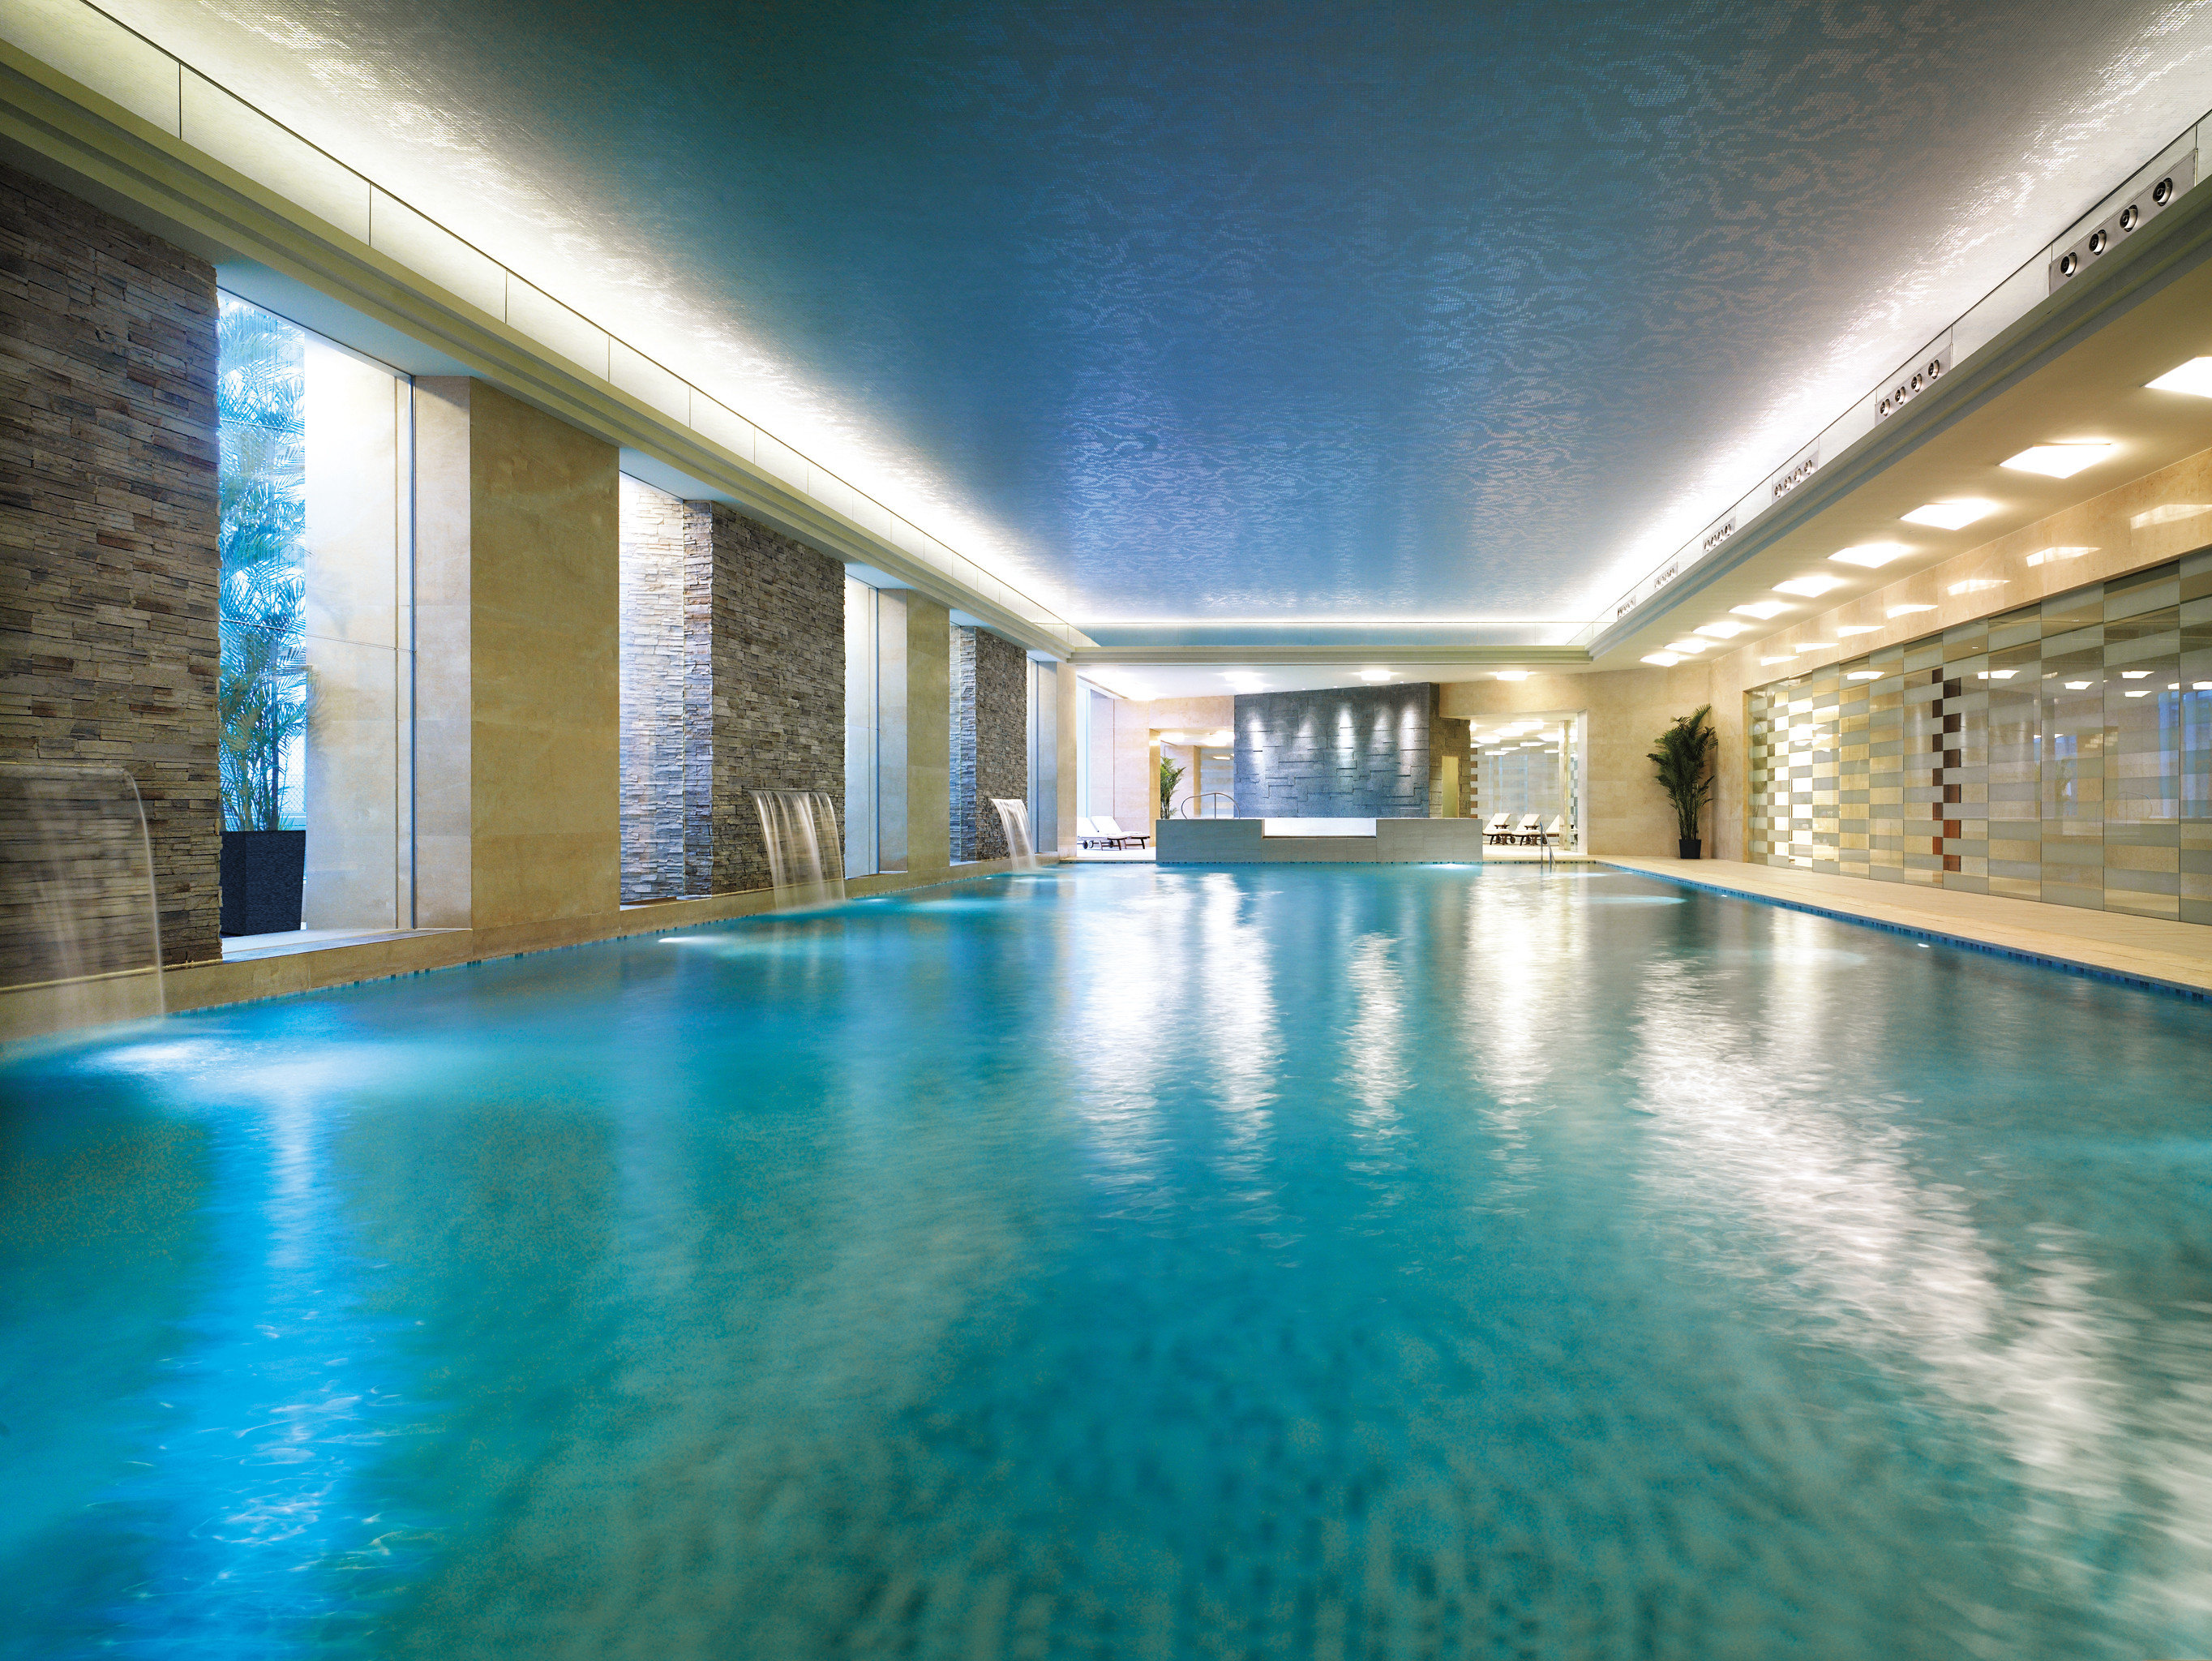 Luxury Modern Pool swimming pool property leisure blue leisure centre Resort thermae mansion condominium thermal bath empty